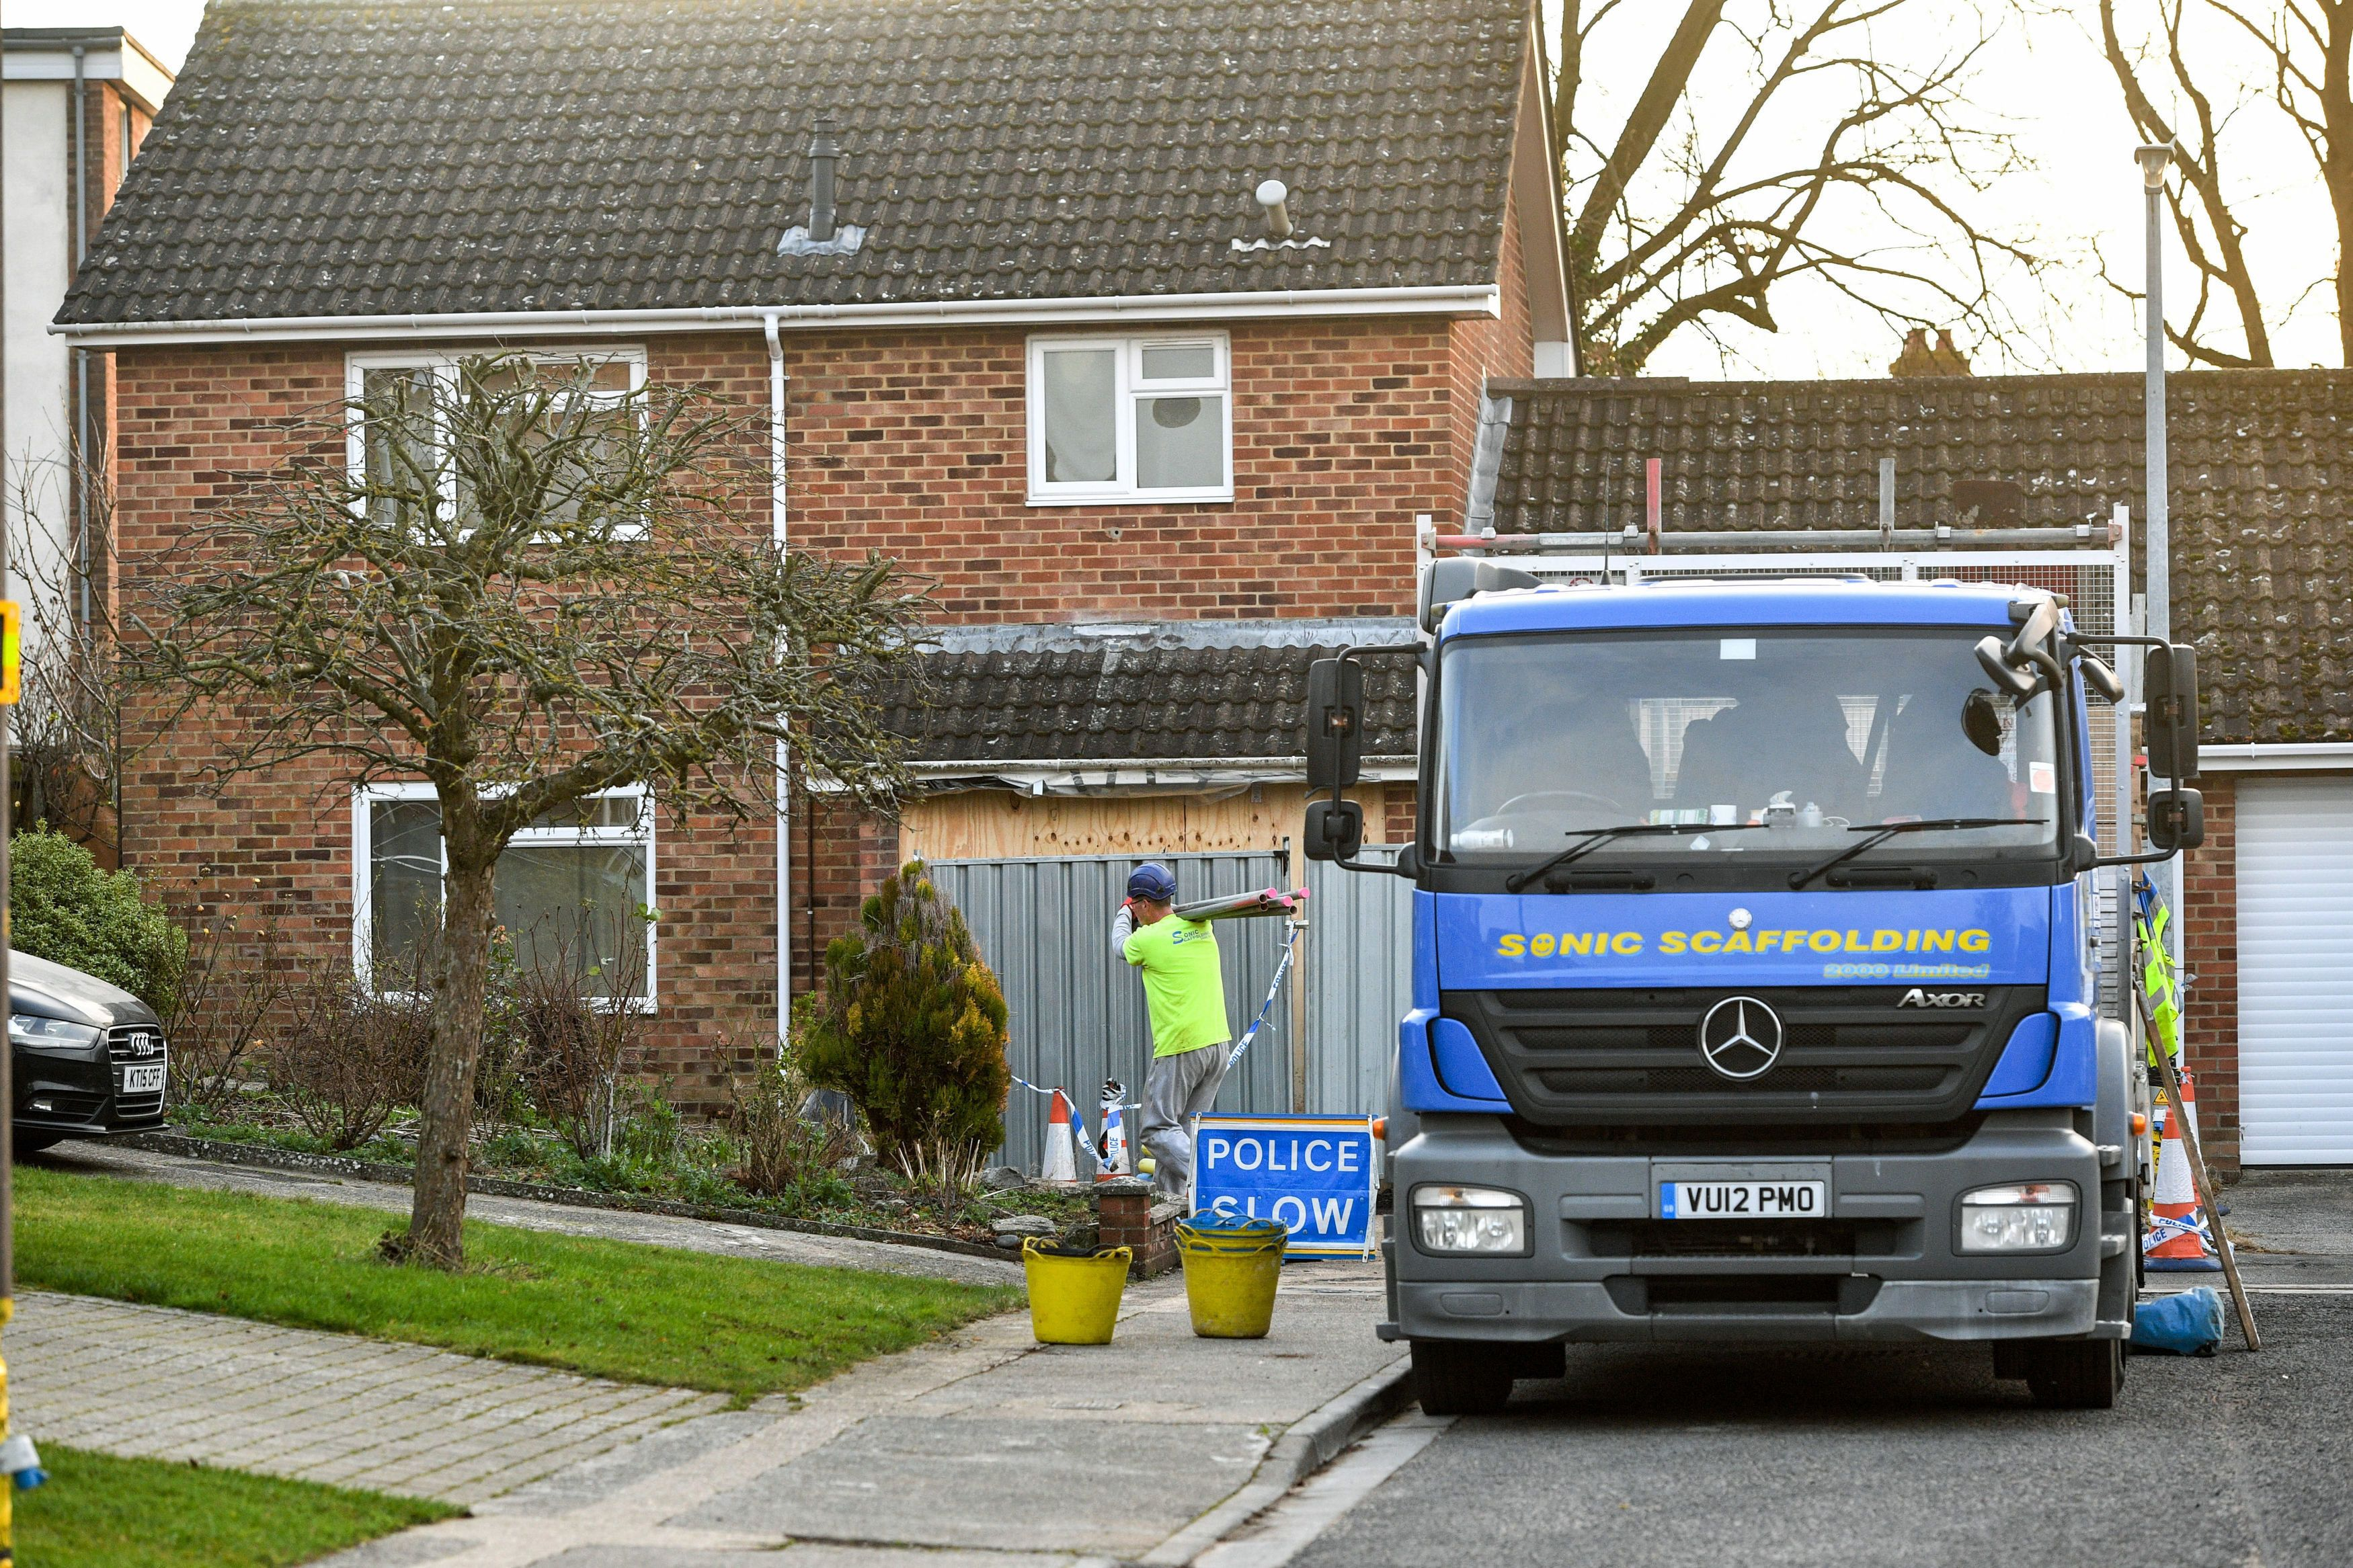 Sergei Skripal's House To Be Dismantled As Part of 'Deep Clean'